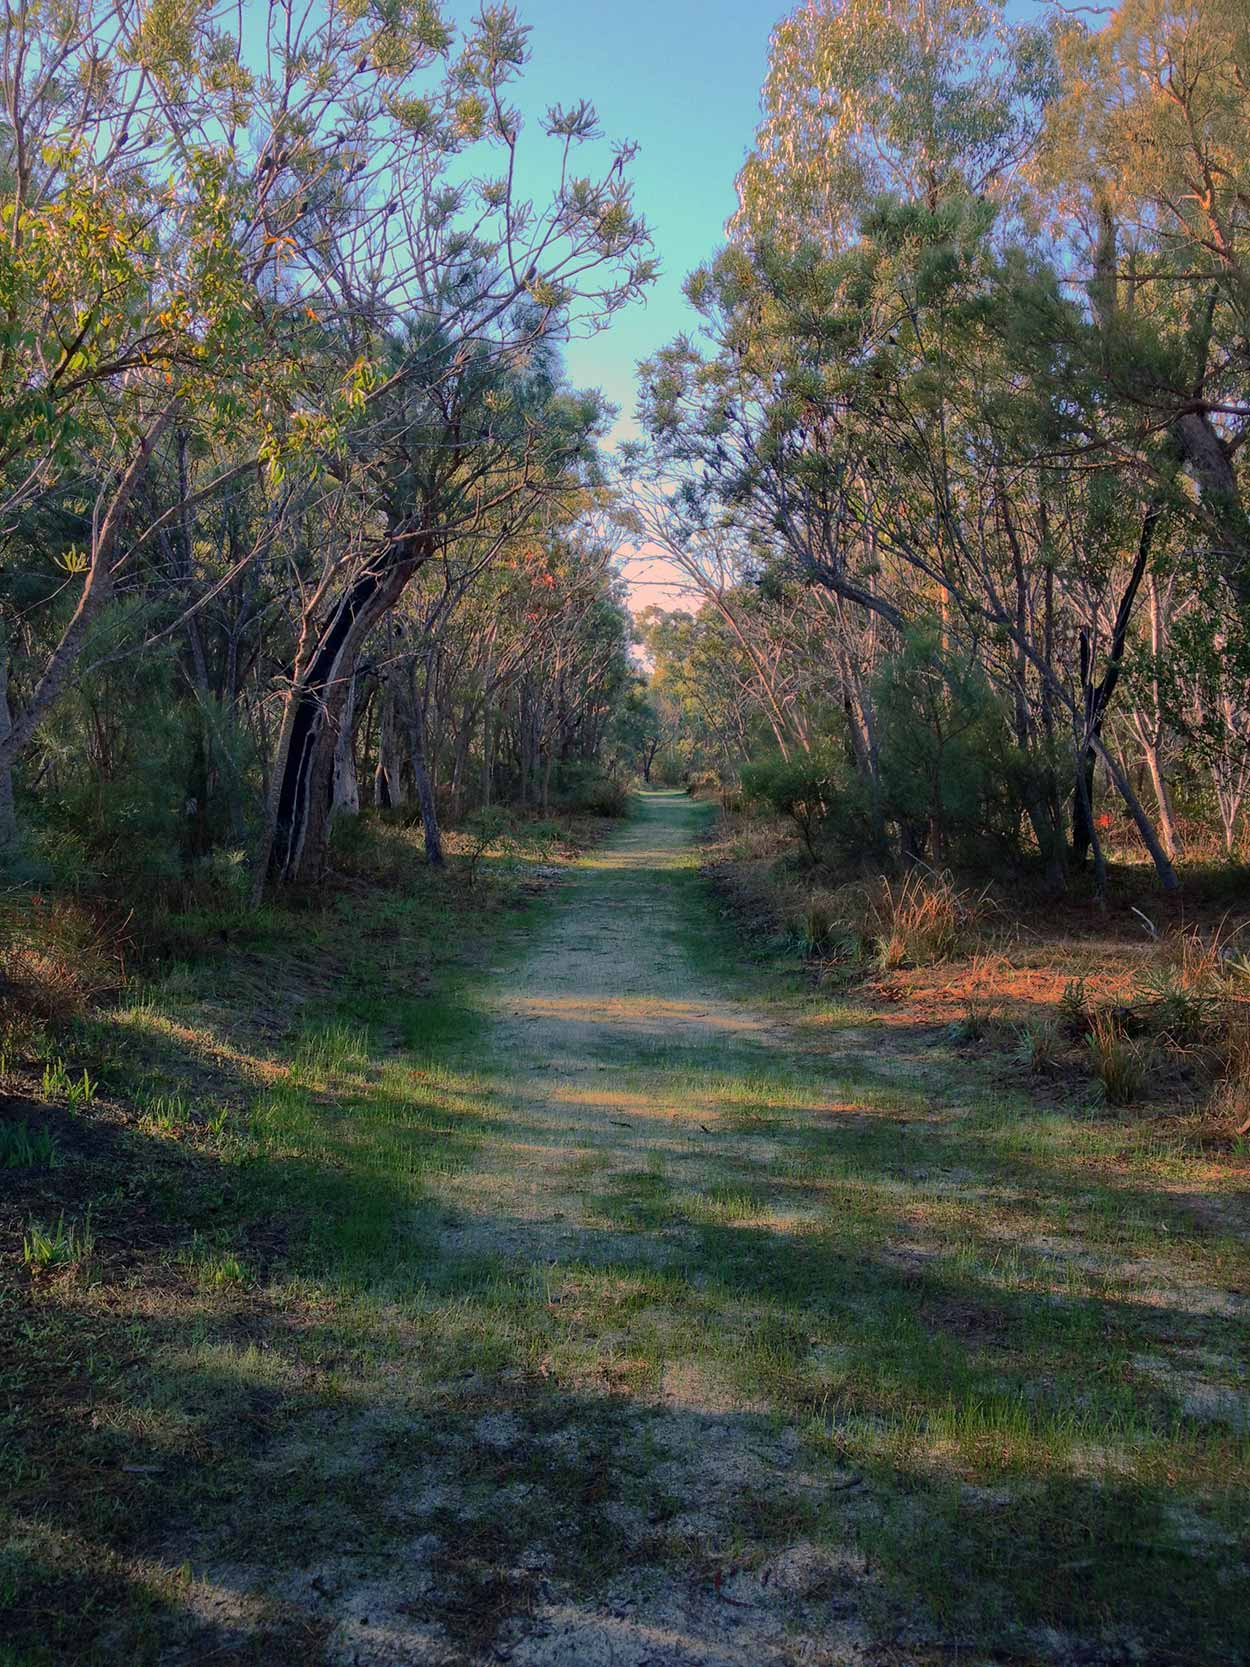 A sandy path in the Kings Park bushland near Thomas Street, Perth, Western Australia